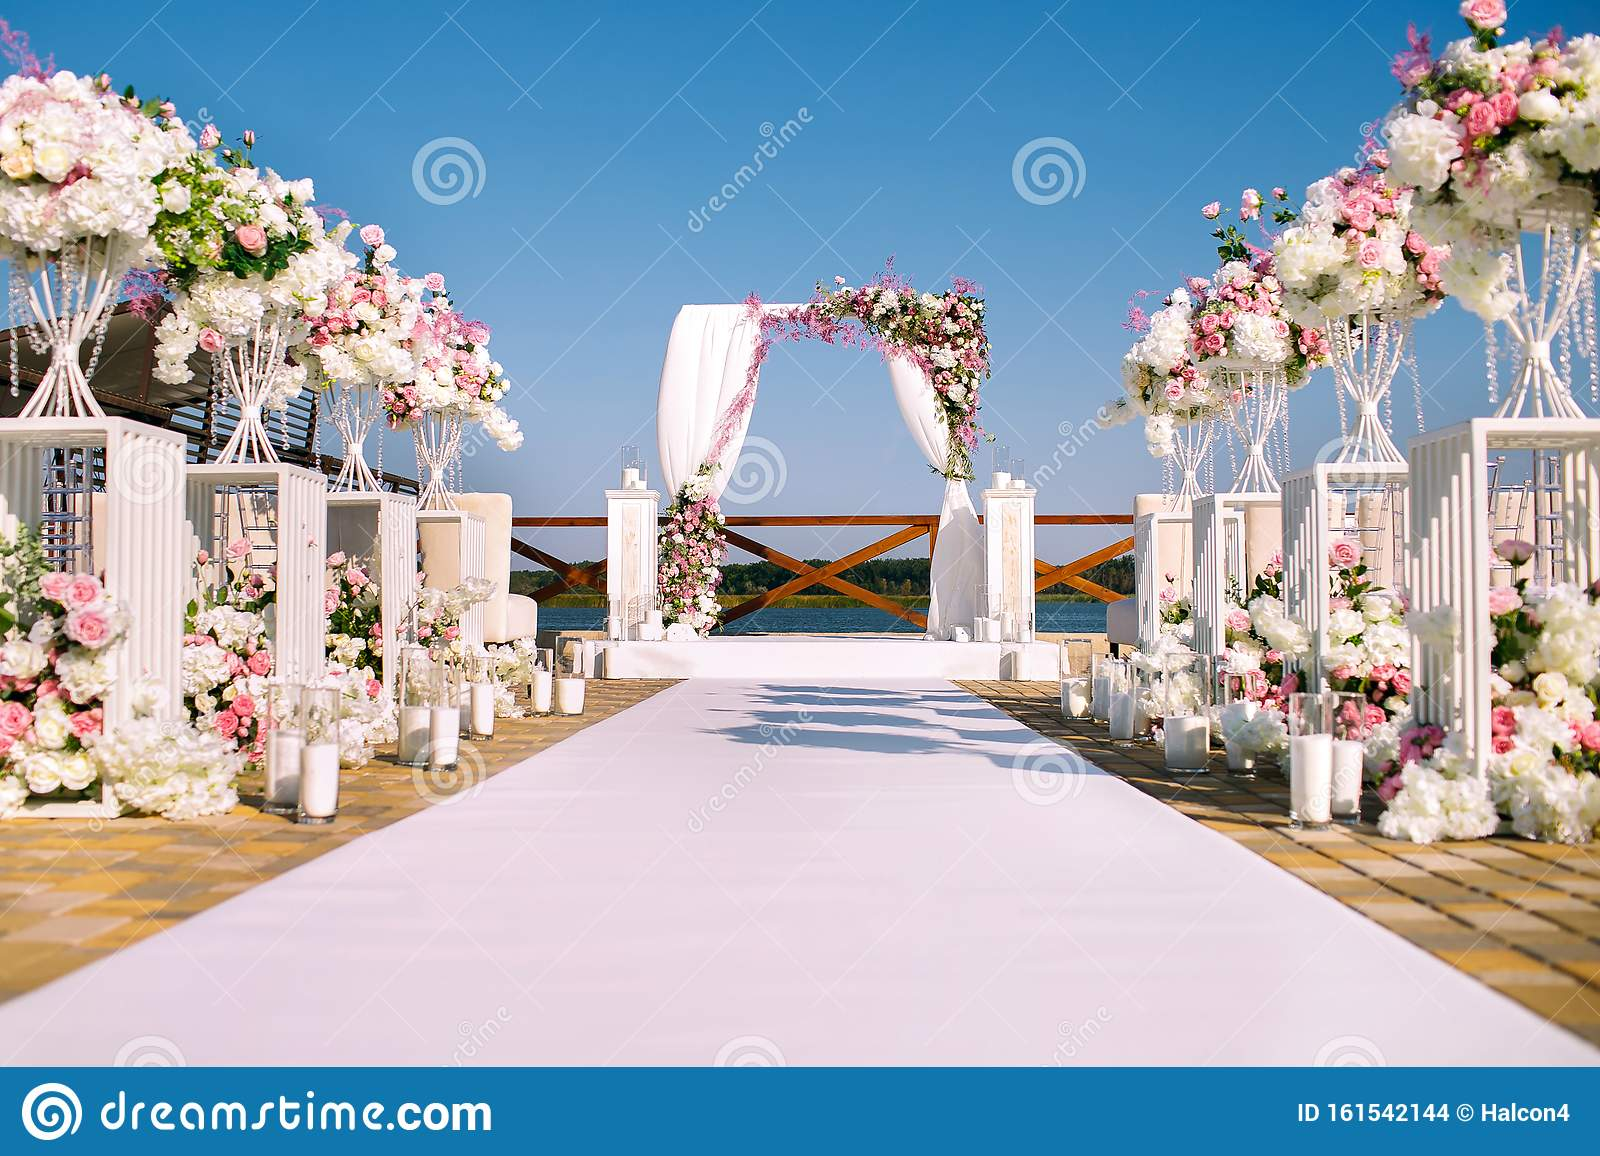 Wedding Ceremony Wedding Arch Wedding Arch Made Of Branches Flowers And Greenery Is On The Green Grass On The River Bank Stock Photo Image Of Bank Holiday 161542144